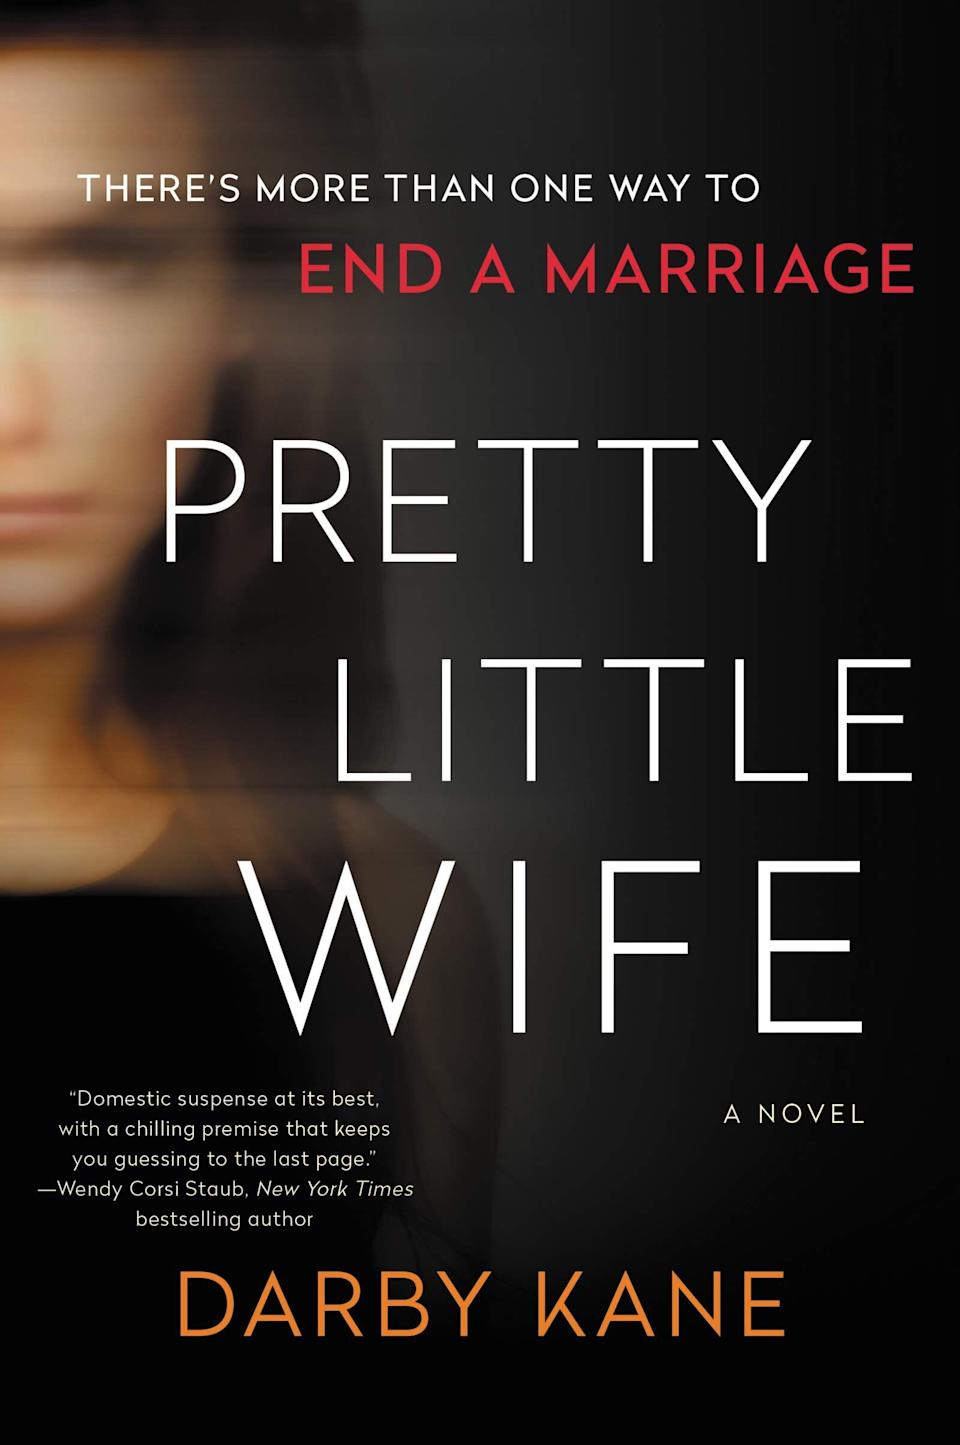 """When Lila's husband disappears, the small college town they live in goes into an uproar-- not only is he a beloved teacher at the local high school, but he's the second disappearance in two months. Lila is worried too-- because she was the last to see her husband's body and now it's gone. This twisty mystery thriller is Darby Kane's debut novel. Read more about it on <a href=""""https://www.goodreads.com/book/show/53441185-pretty-little-wife"""">Goodreads</a>, and grab a copy on <a href=""""https://amzn.to/36sWibE"""">Amazon</a> or <a href=""""https://fave.co/2JD1xNa"""">Bookshop</a>.<br /><br /><i>Expected release date:</i> <i>December 29</i>"""